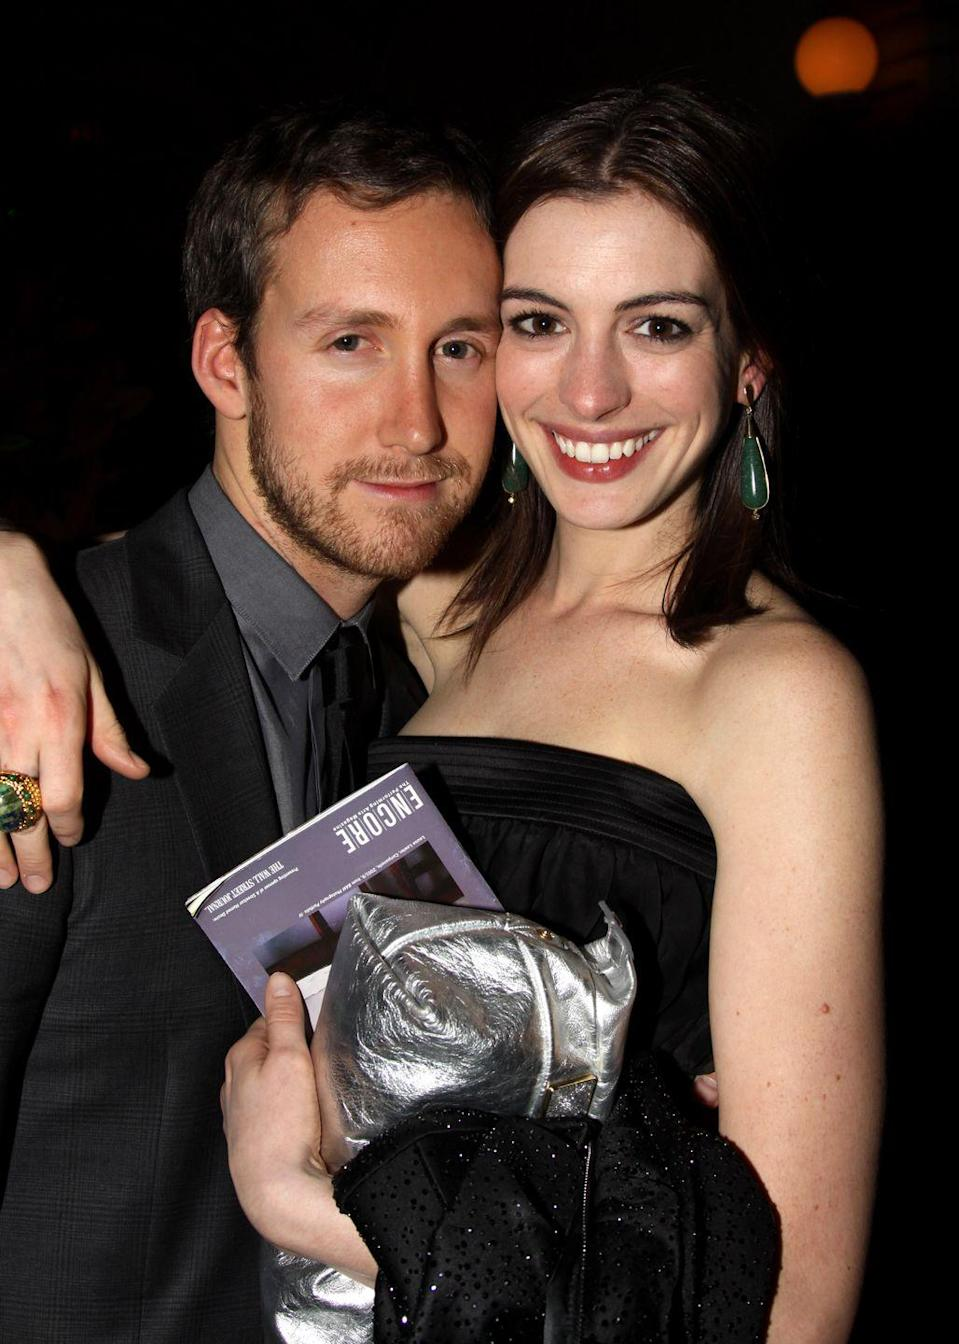 """<p>The couple were <a href=""""https://www.bustle.com/articles/126326-how-did-anne-hathaway-and-adam-shulman-first-meet-their-story-is-pretty-close-to-love"""" rel=""""nofollow noopener"""" target=""""_blank"""" data-ylk=""""slk:introduced"""" class=""""link rapid-noclick-resp"""">introduced</a> by a mutual friend at the Palm Springs Film Festival in 2008. The two have been married since 2012 and have a son together, so I guess you could say things worked out nicely. Though Hathaway has said she only married Shulman because she """"<a href=""""https://people.com/movies/anne-hathaway-jokes-that-she-only-married-adam-shulman-because-she-couldnt-get-emily-blunt/"""" rel=""""nofollow noopener"""" target=""""_blank"""" data-ylk=""""slk:couldn't get Emily"""" class=""""link rapid-noclick-resp"""">couldn't get Emily</a> [Blunt].""""</p>"""